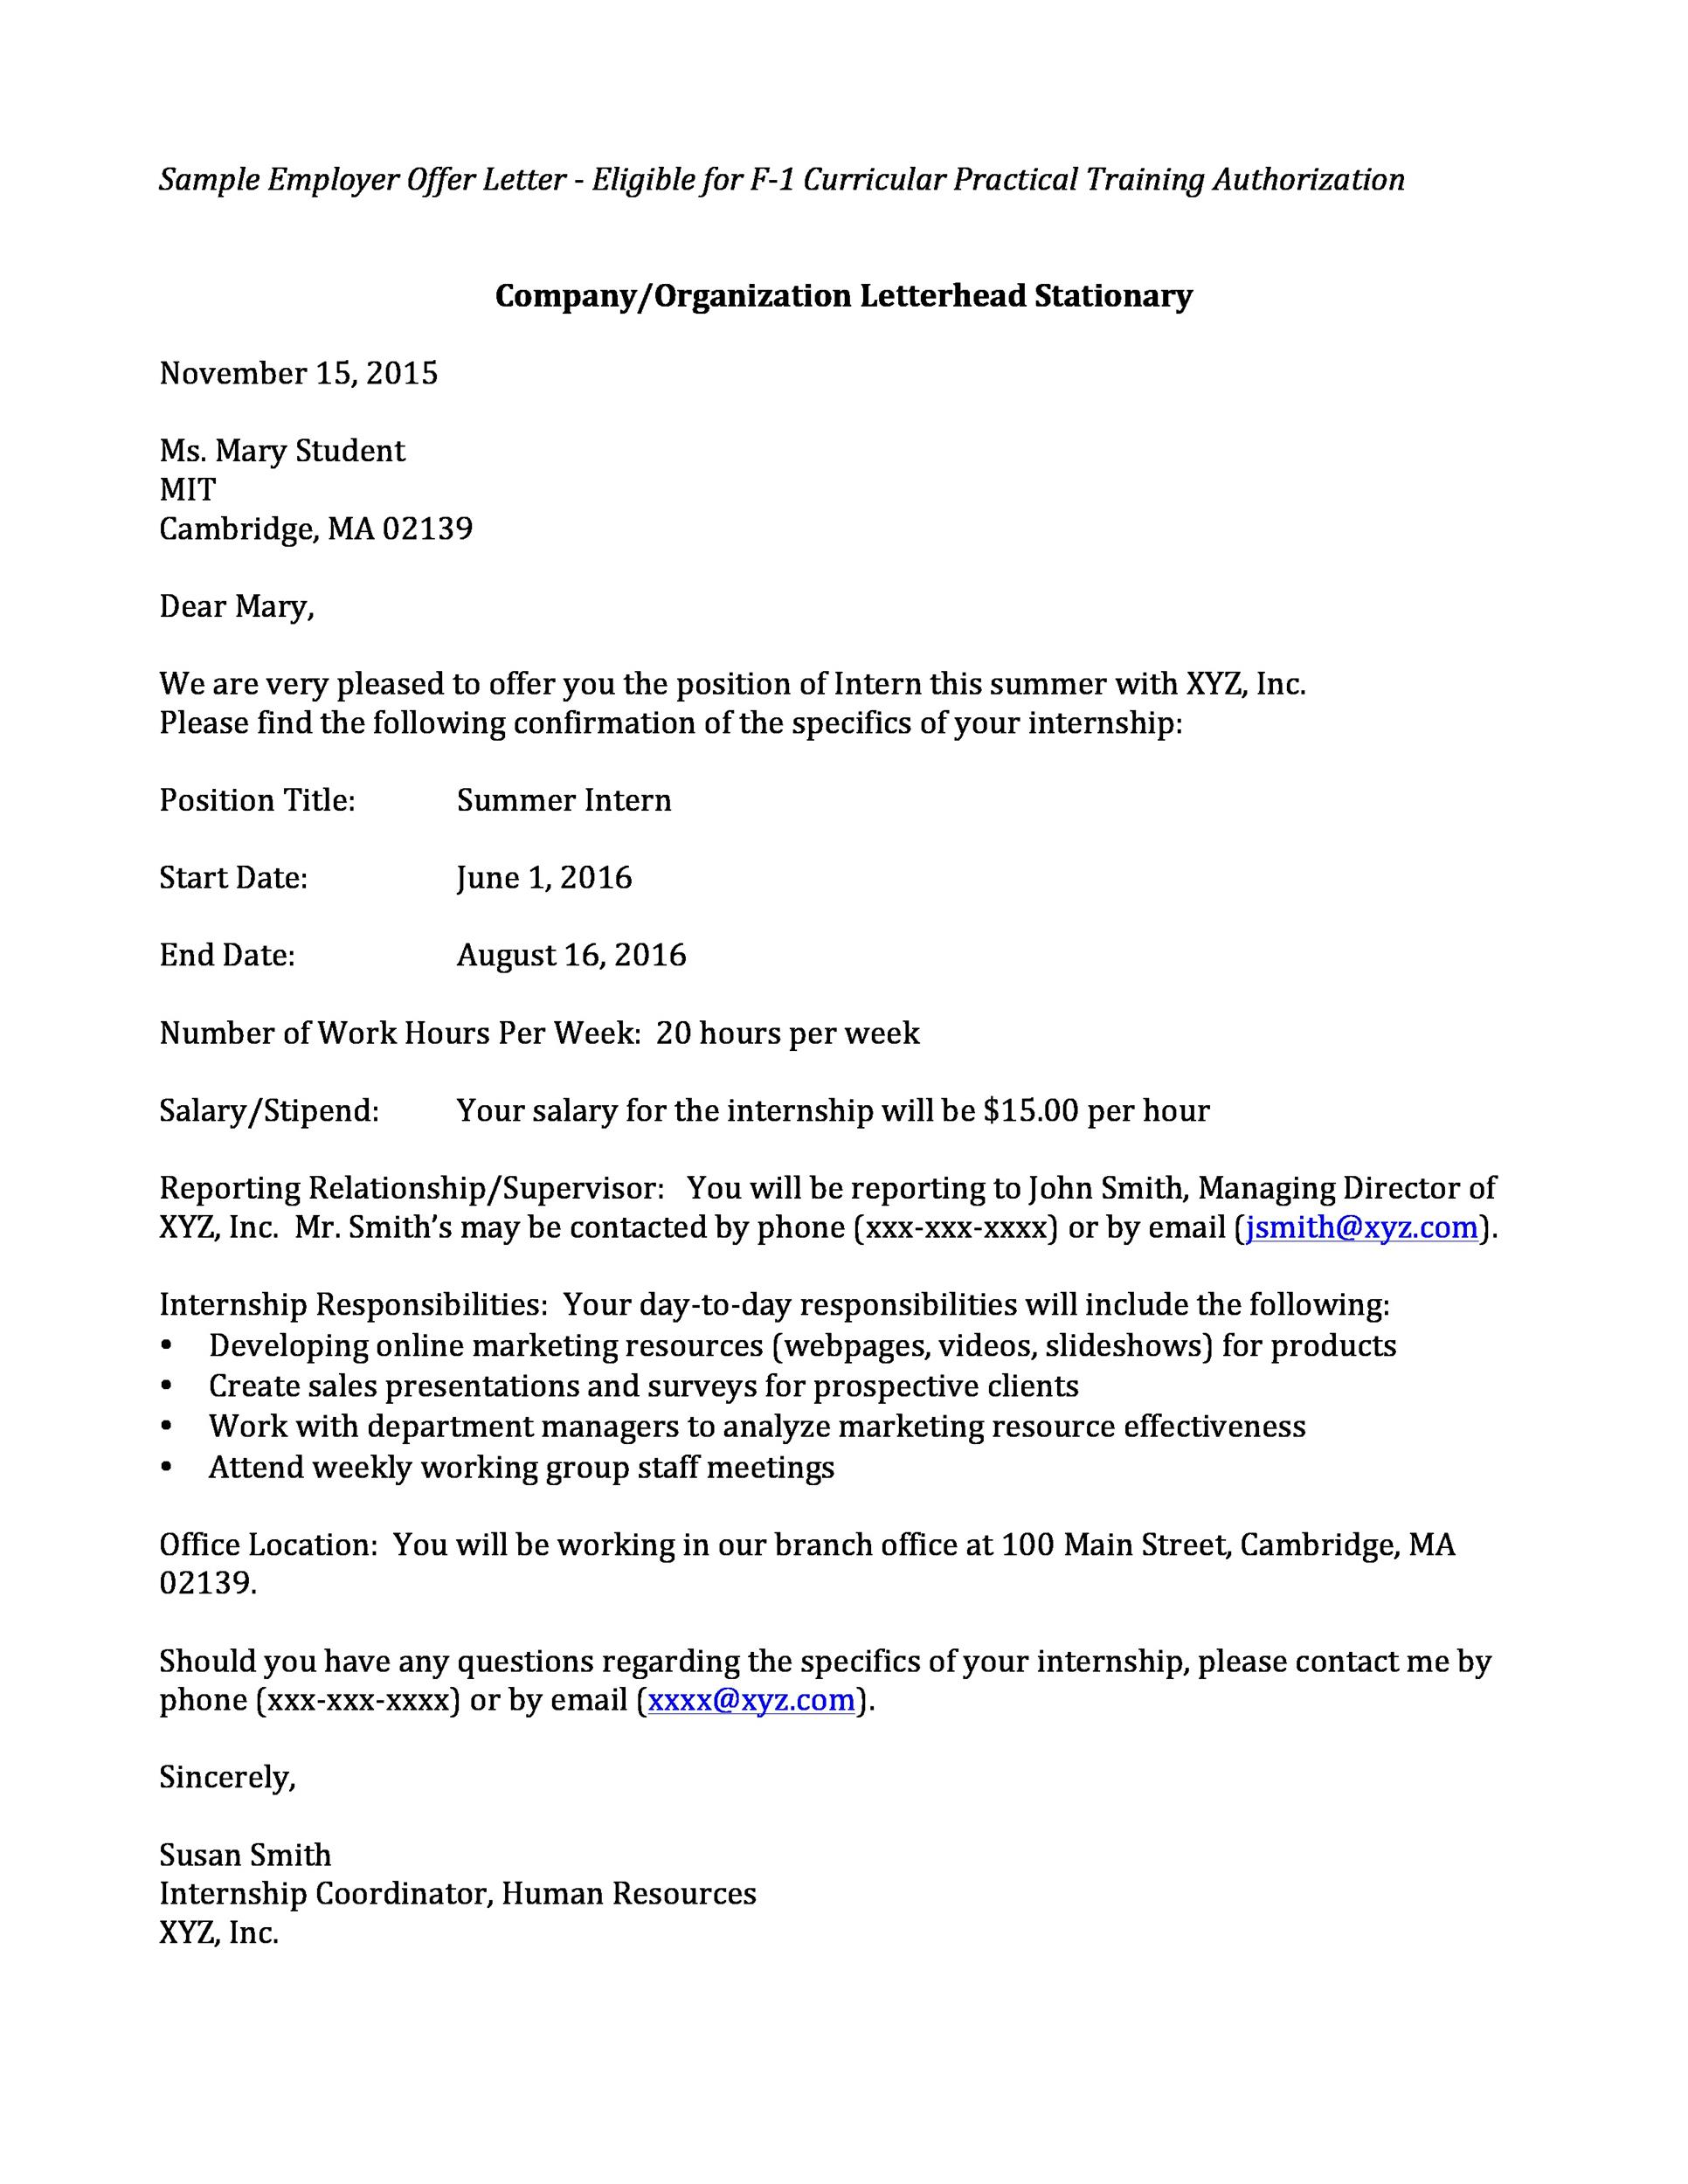 How To Write A Job Refusal Email Cover Letter